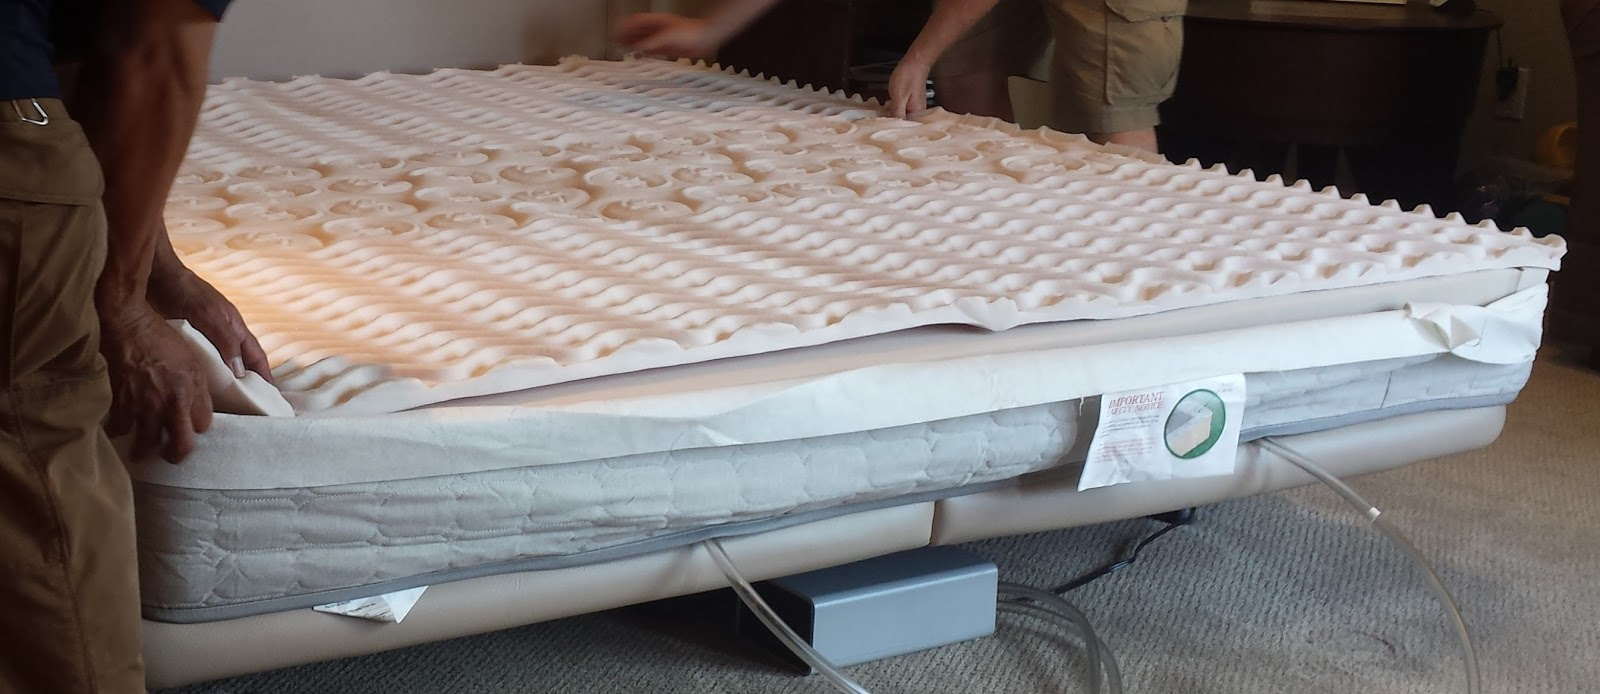 an eggcrate topping was added - Sleepnumber Bed